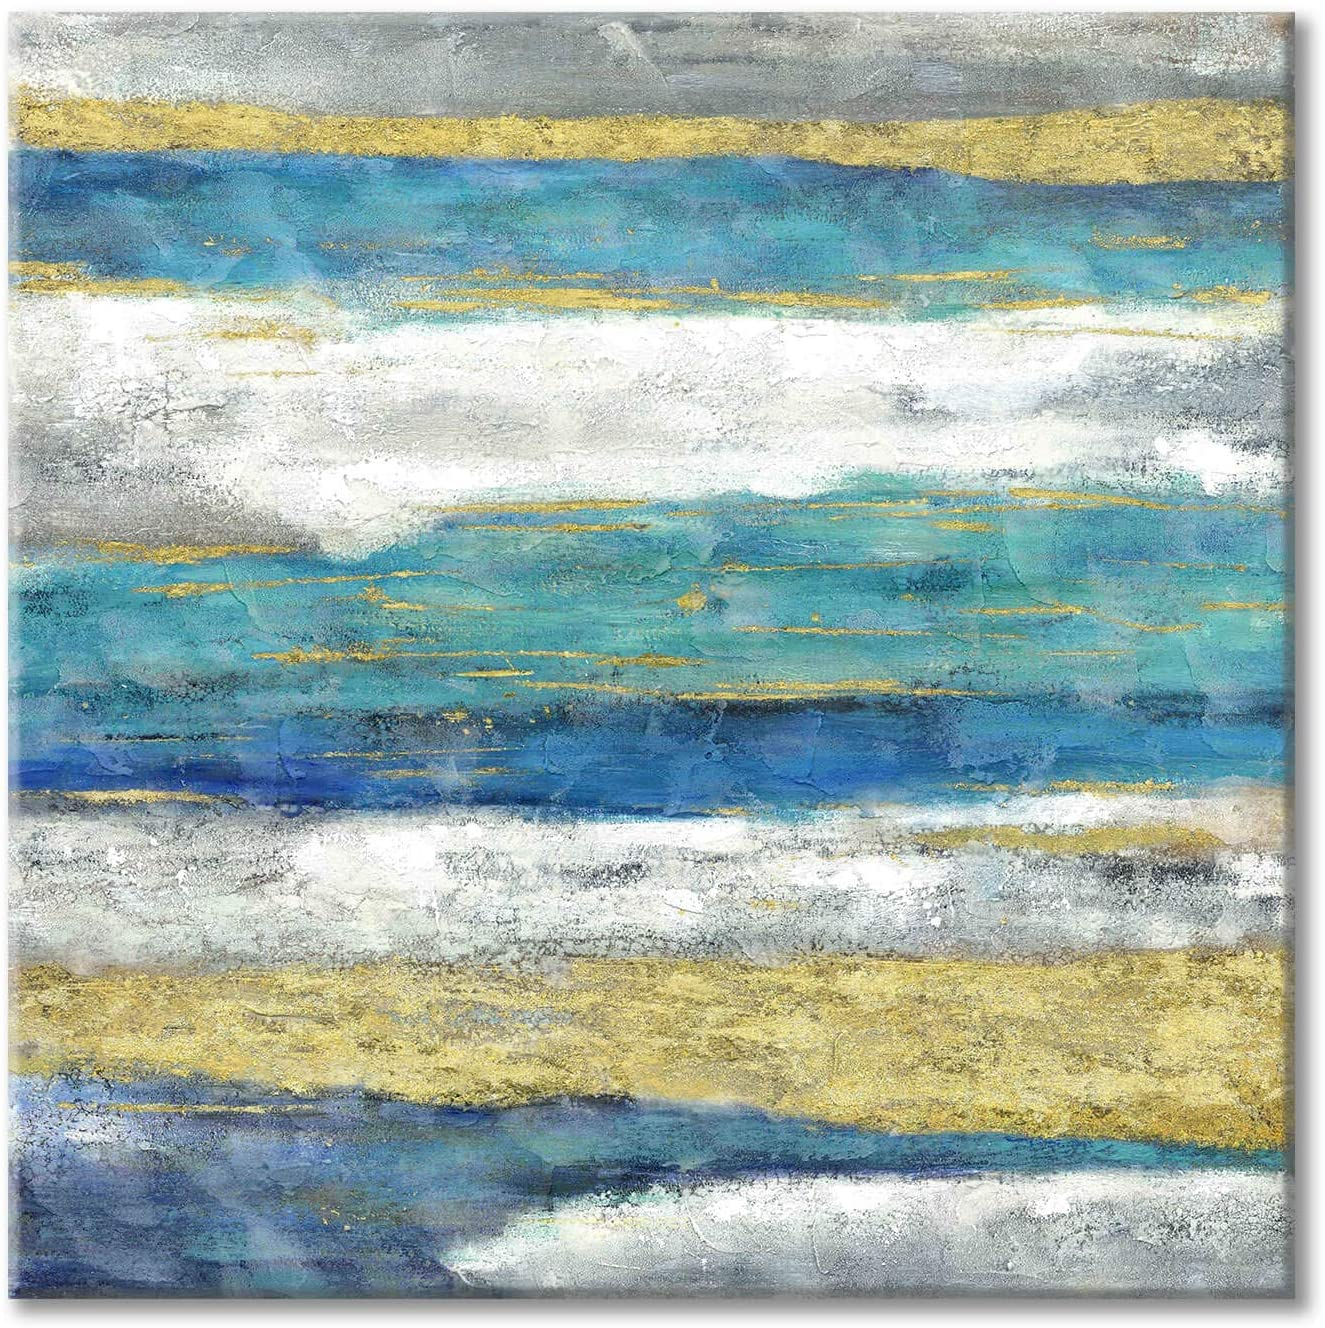 Abstract Painting Canvas Wall Art: Hand Painted Artwork Stripe Picture for Bedroom Wall (24 x 24 x 1 Panel)